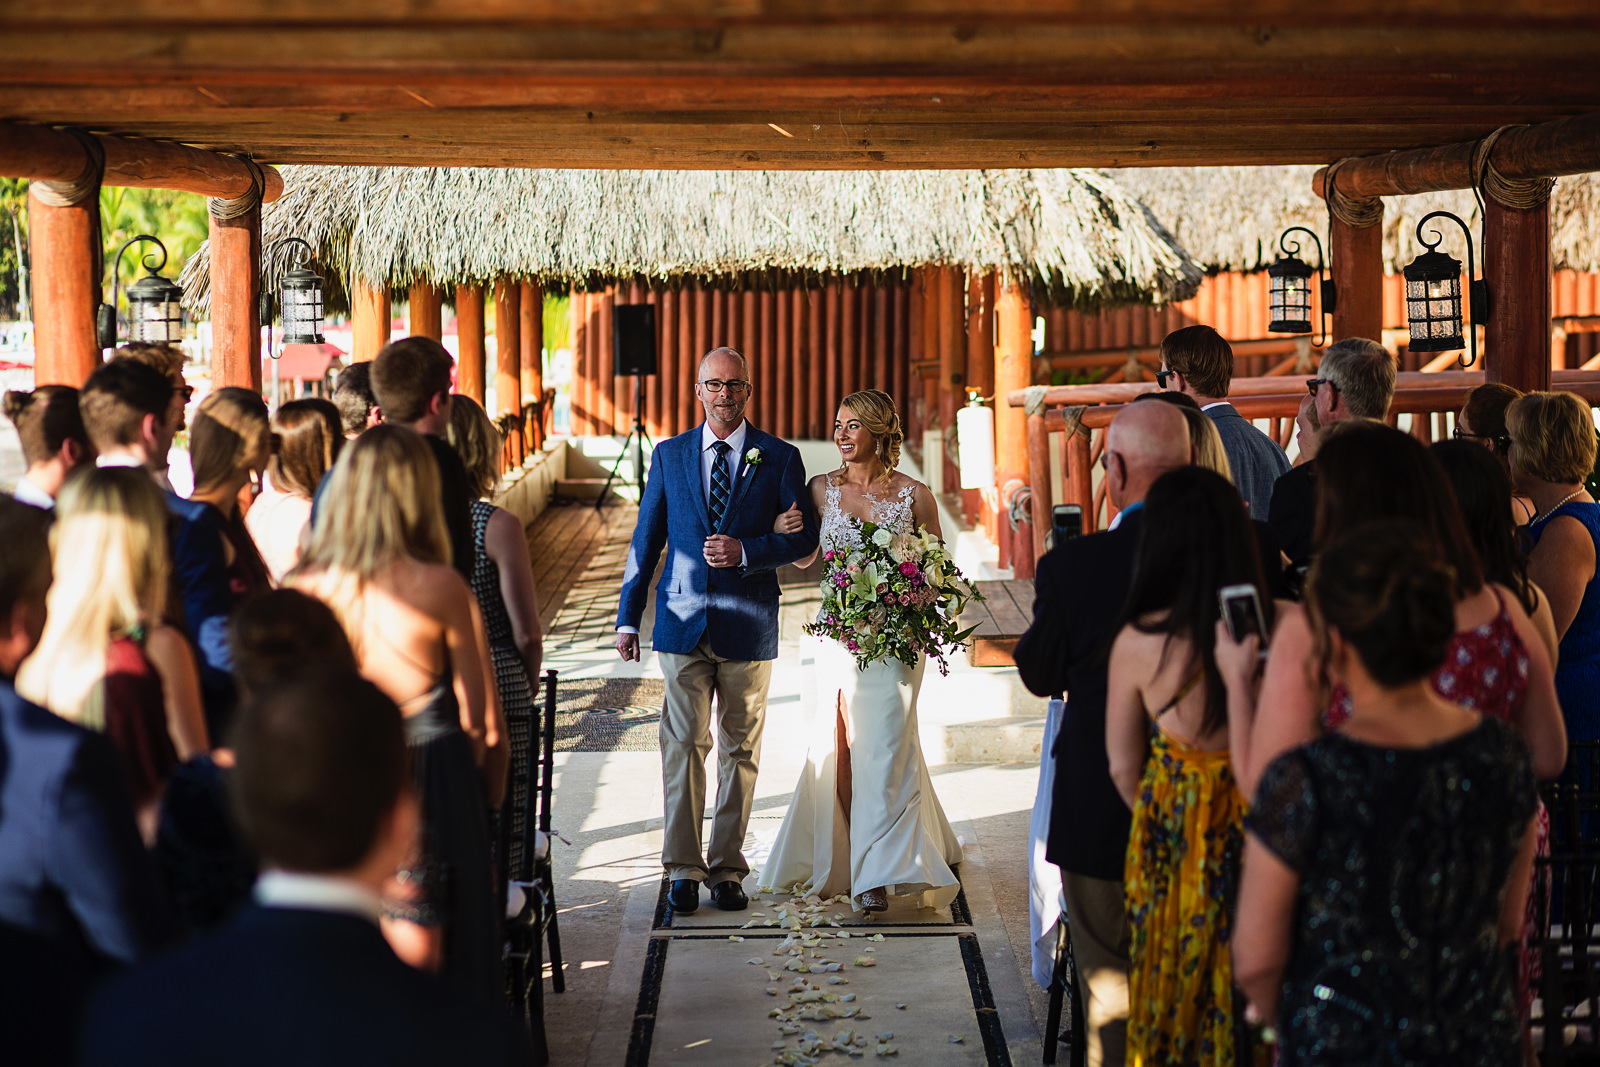 bride-father-down-aisle-ceremony-playa-fiesta-wedding.jpg